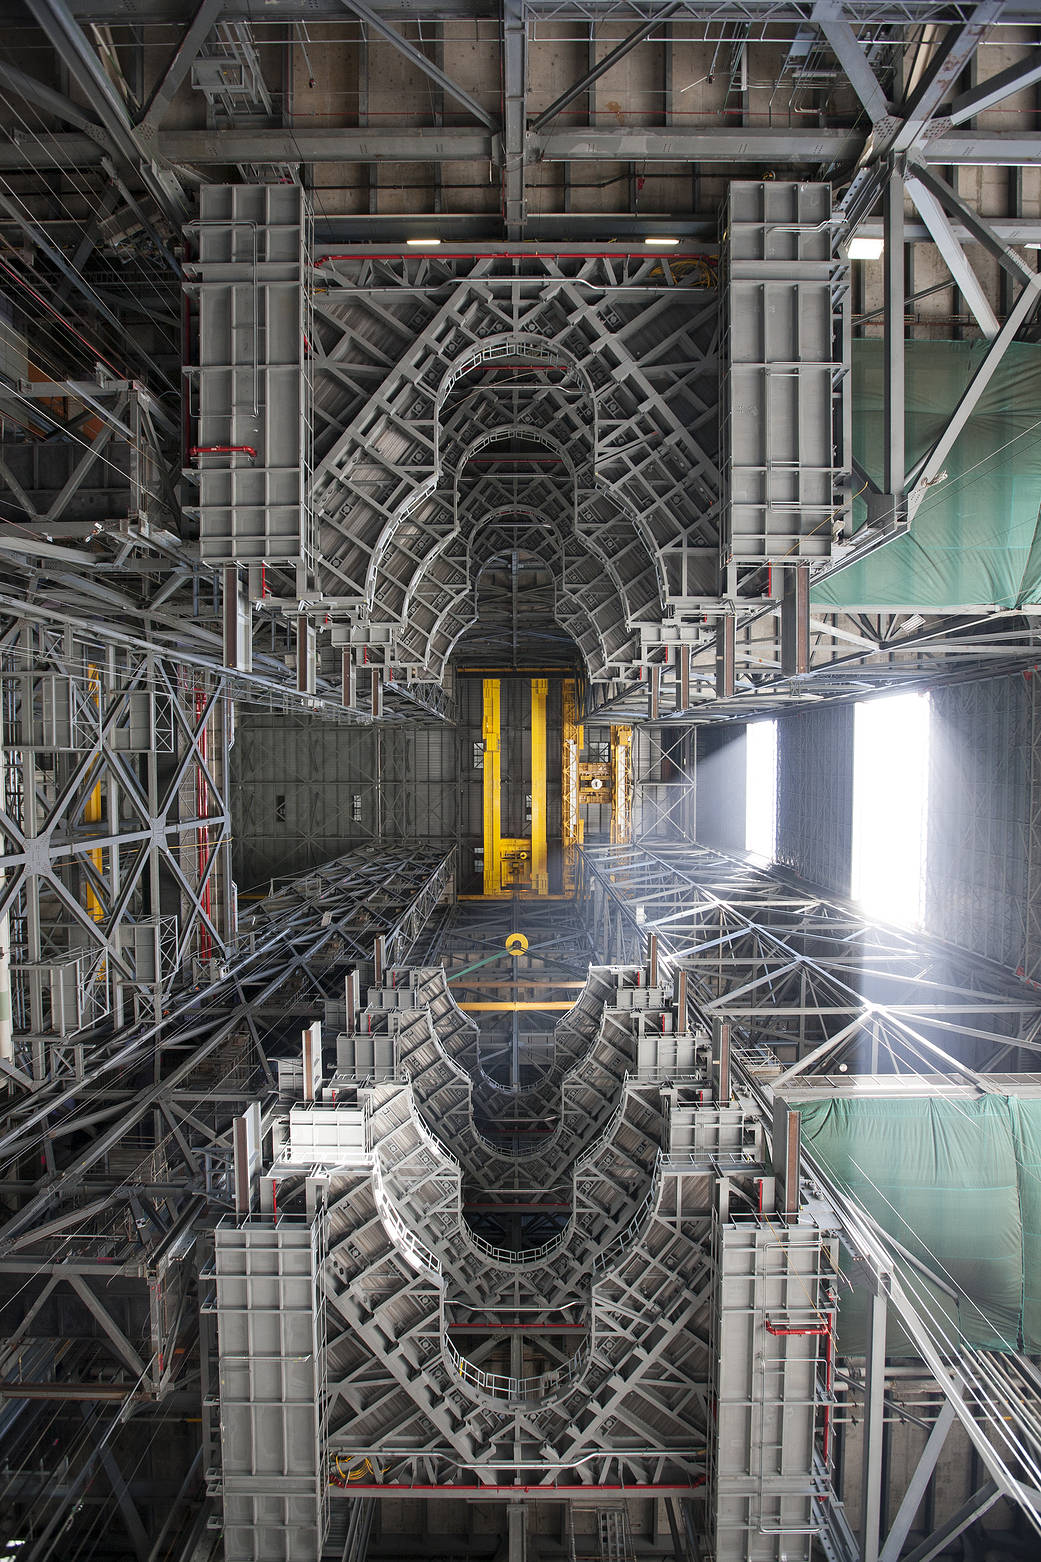 View of upper floors of Vehicle Assembly Building taken from ground